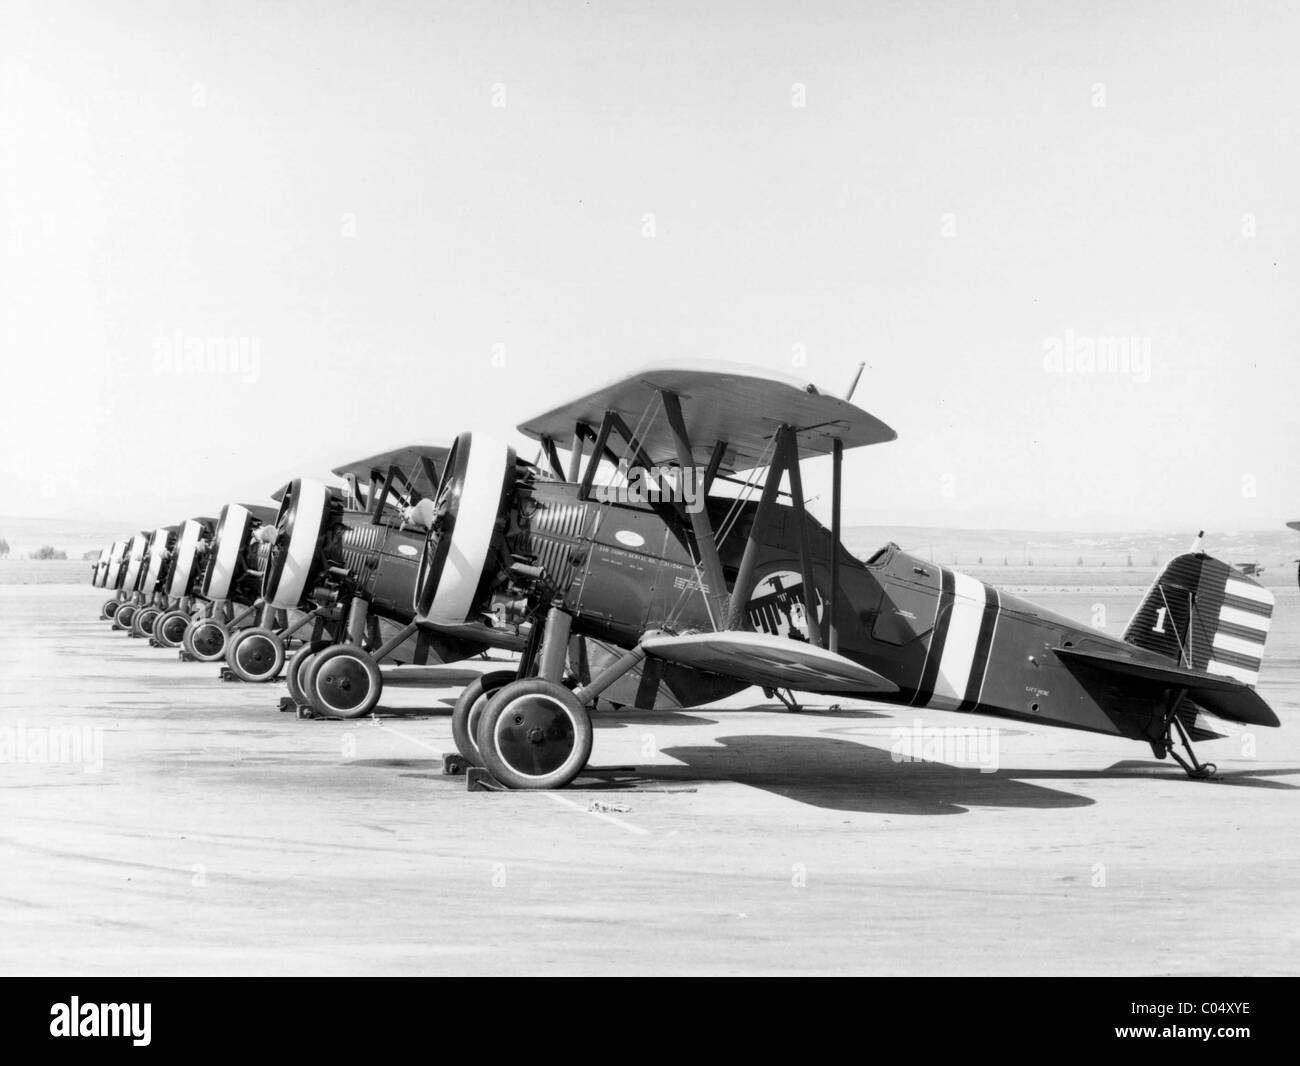 The Boeing P-12 or F4B was an American pursuit aircraft that was operated by the United States Army Air Corps. - Stock Image